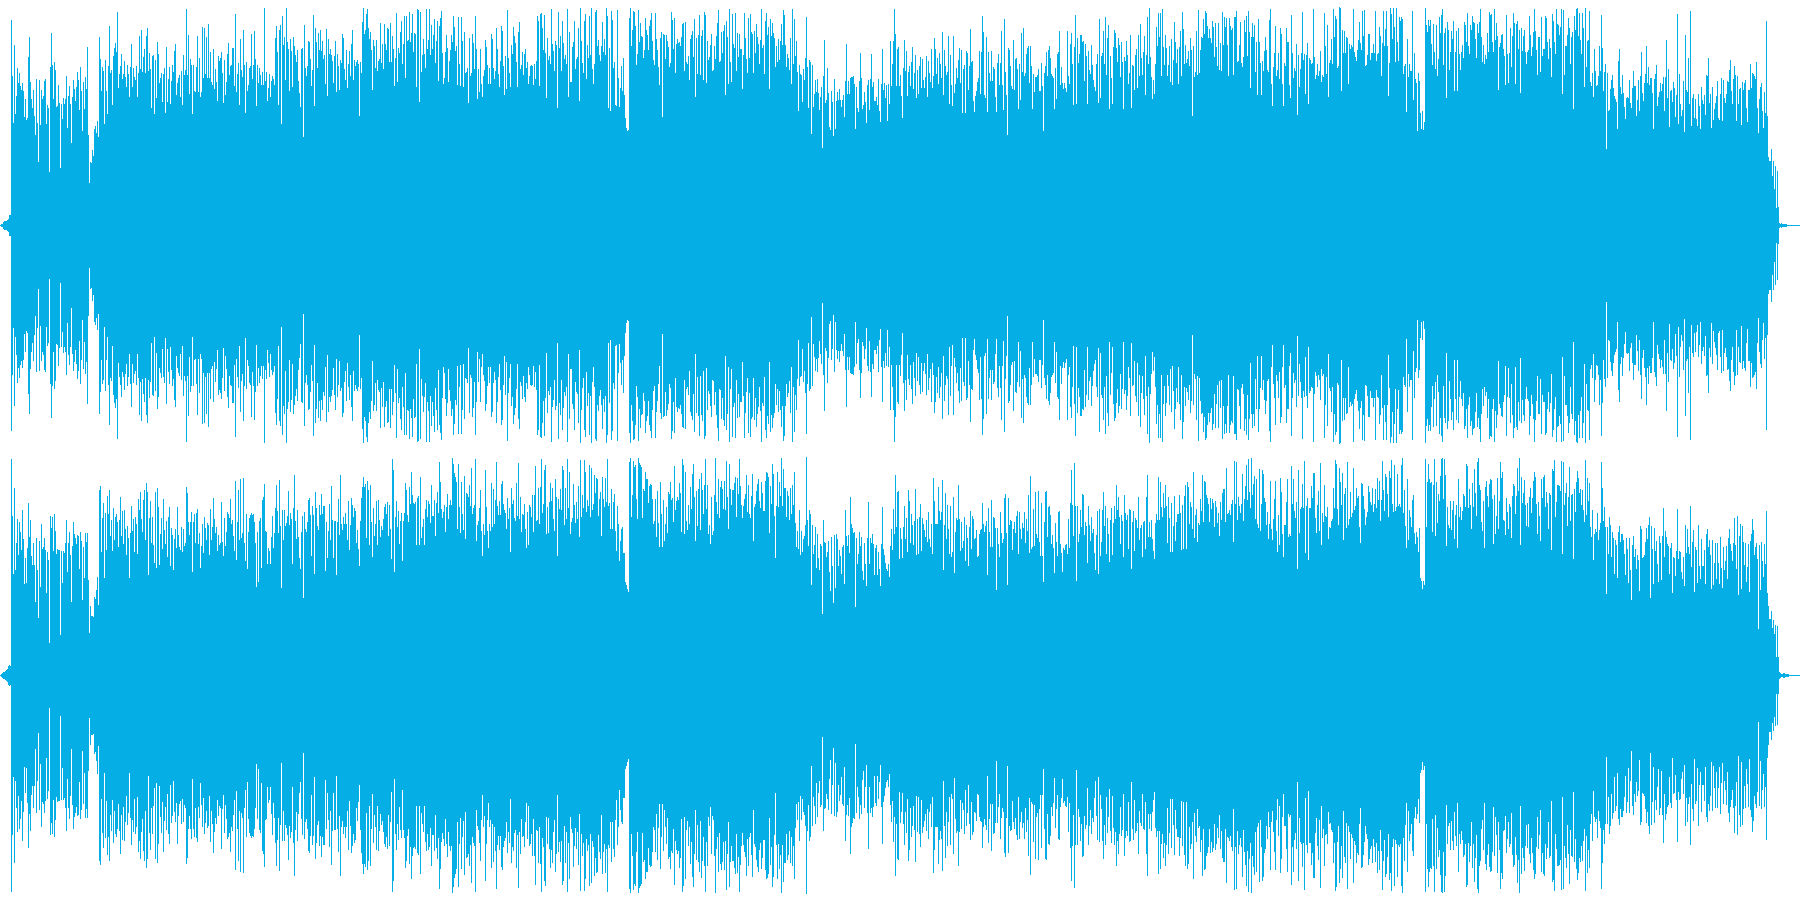 Vivid Electro Dance with Female vocal 's reproduced waveform